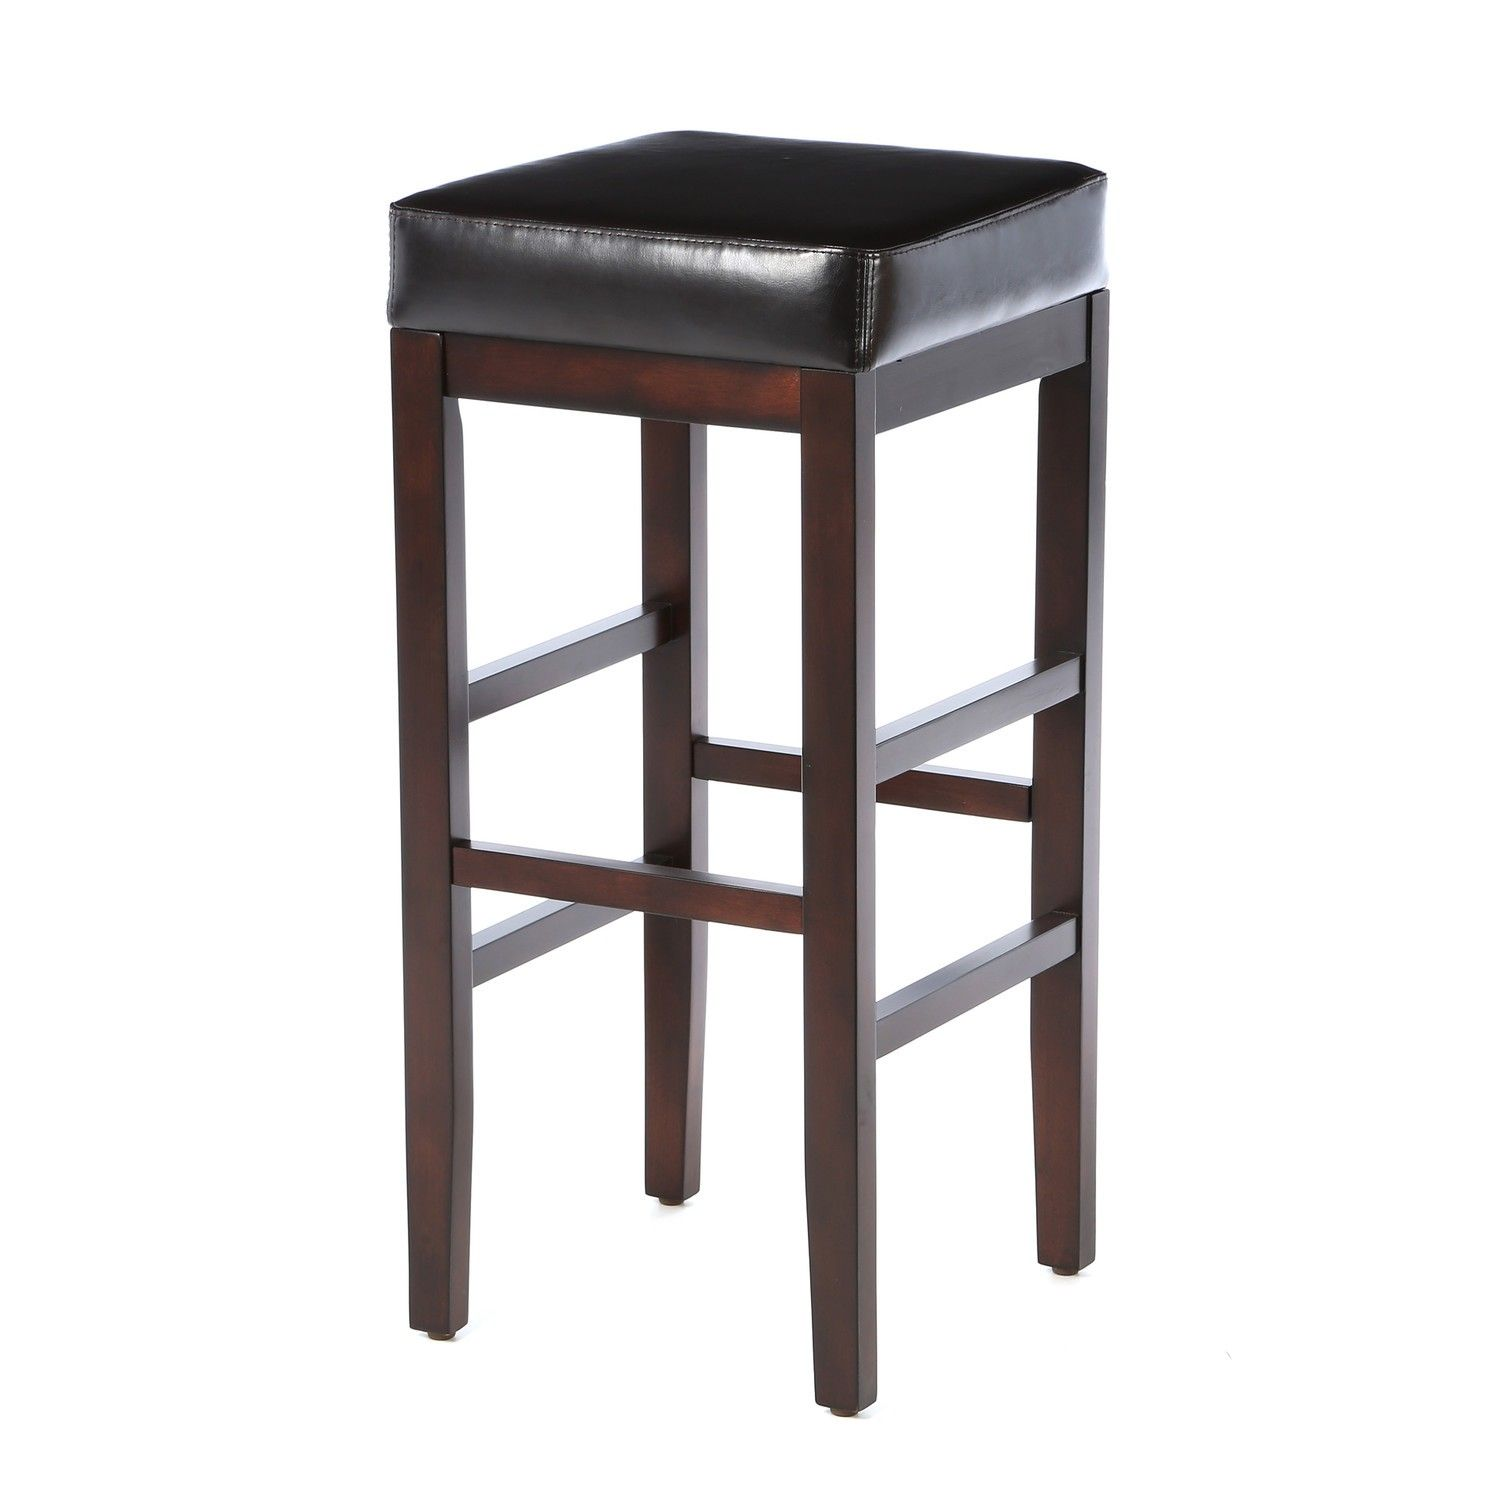 Furniture Square Black Leather Padded Seated Bar Stool Without